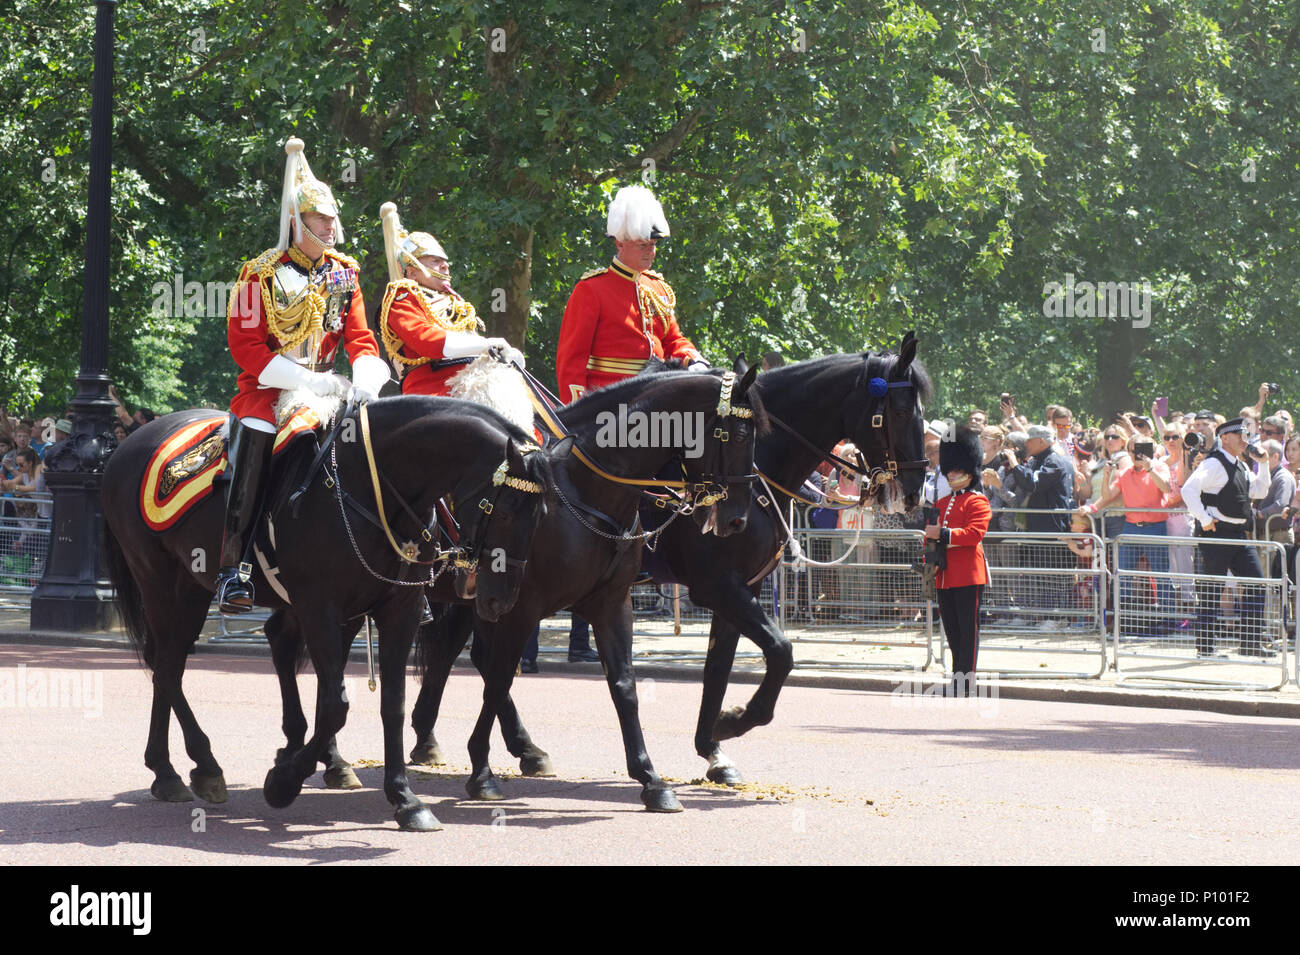 Trooping the Colour, Former Chief of Defence staff Lord Guthrie falls from horse during ceremony Stock Photo